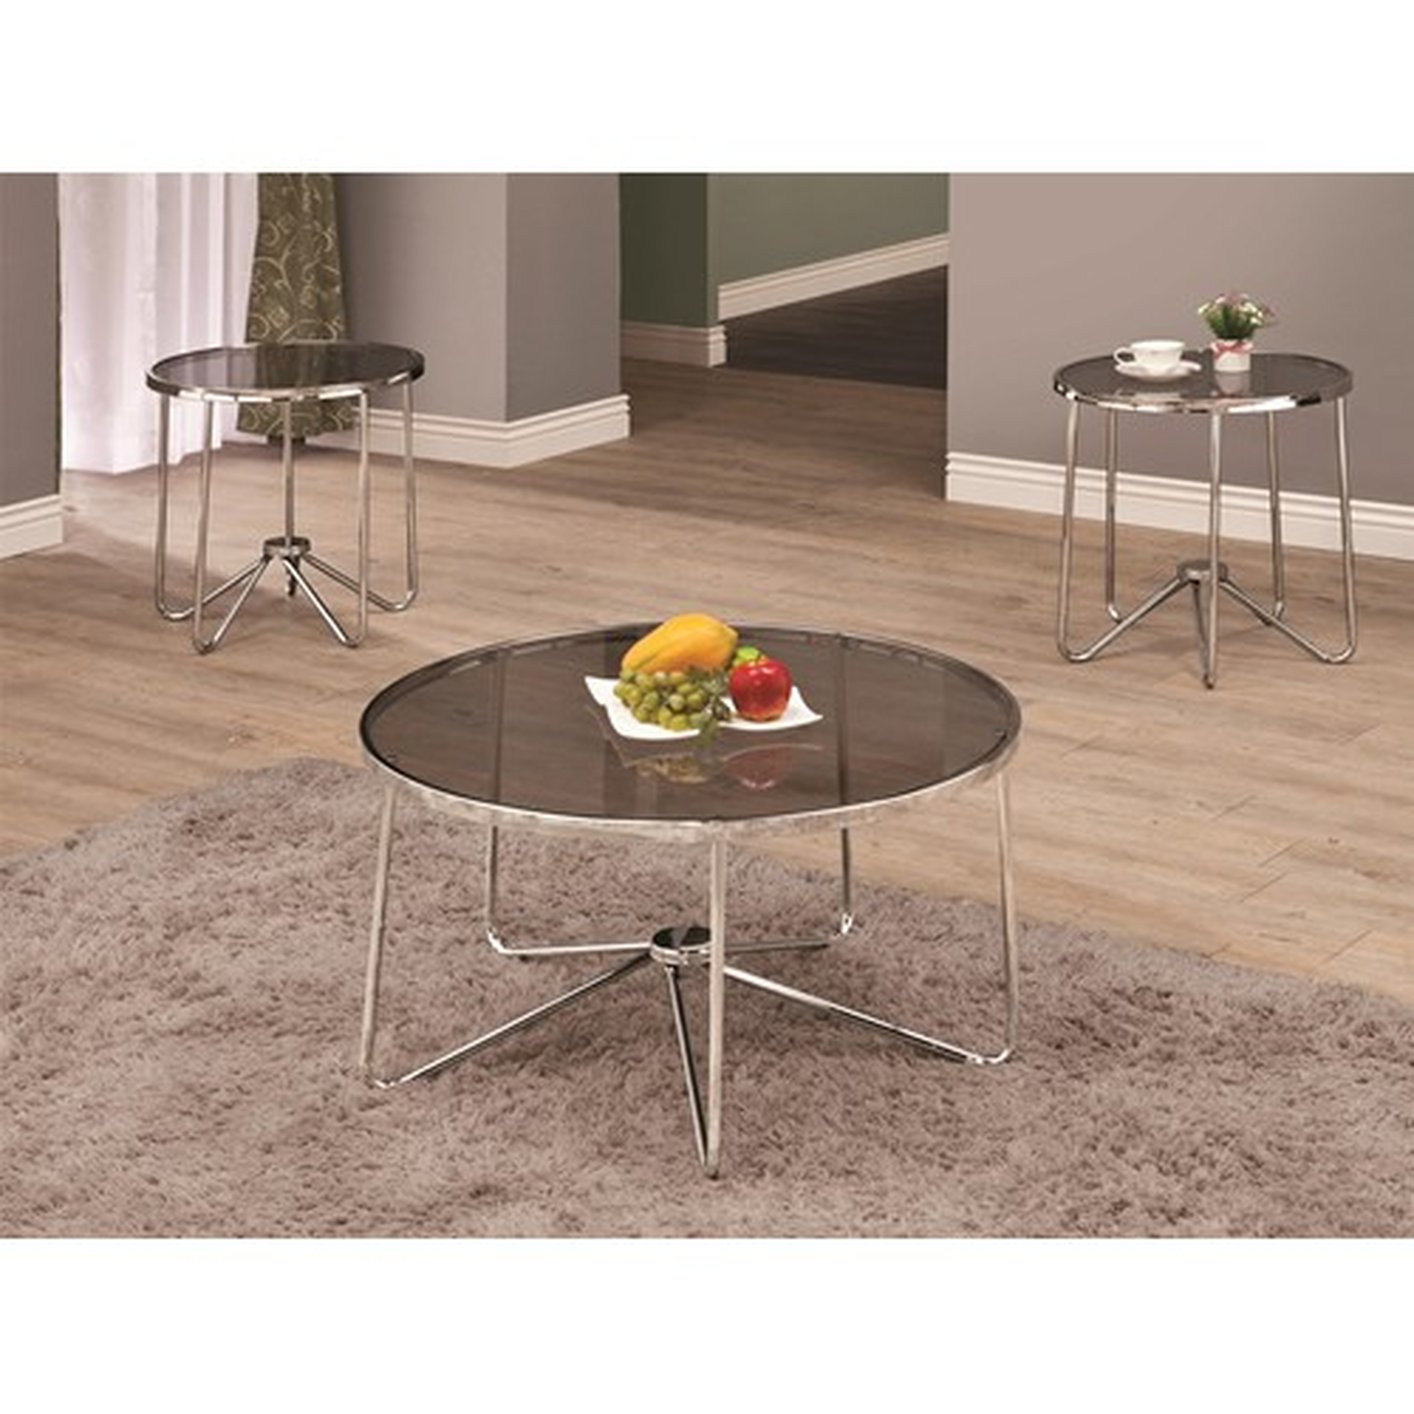 Coaster lois 702335 grey glass coffee table set steal a sofa furniture outlet los angeles ca Glass coffee table set